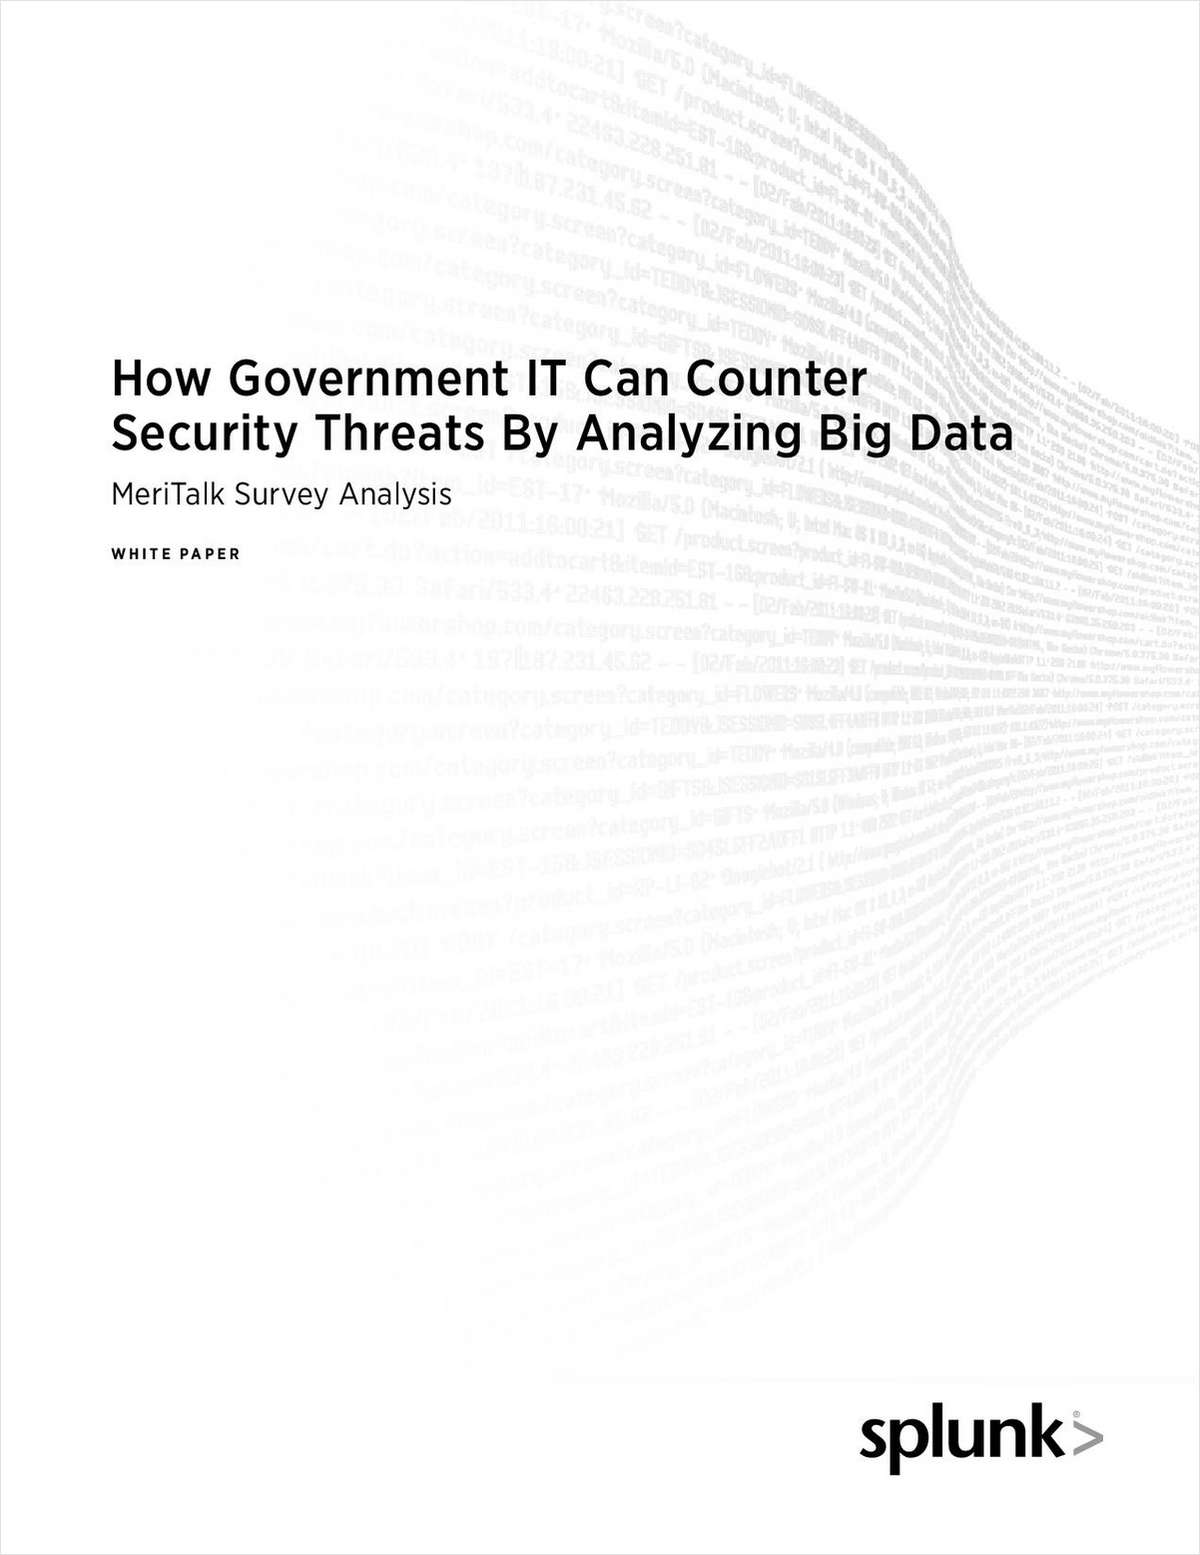 How Government IT Can Counter Security Threats By Analyzing Big Data